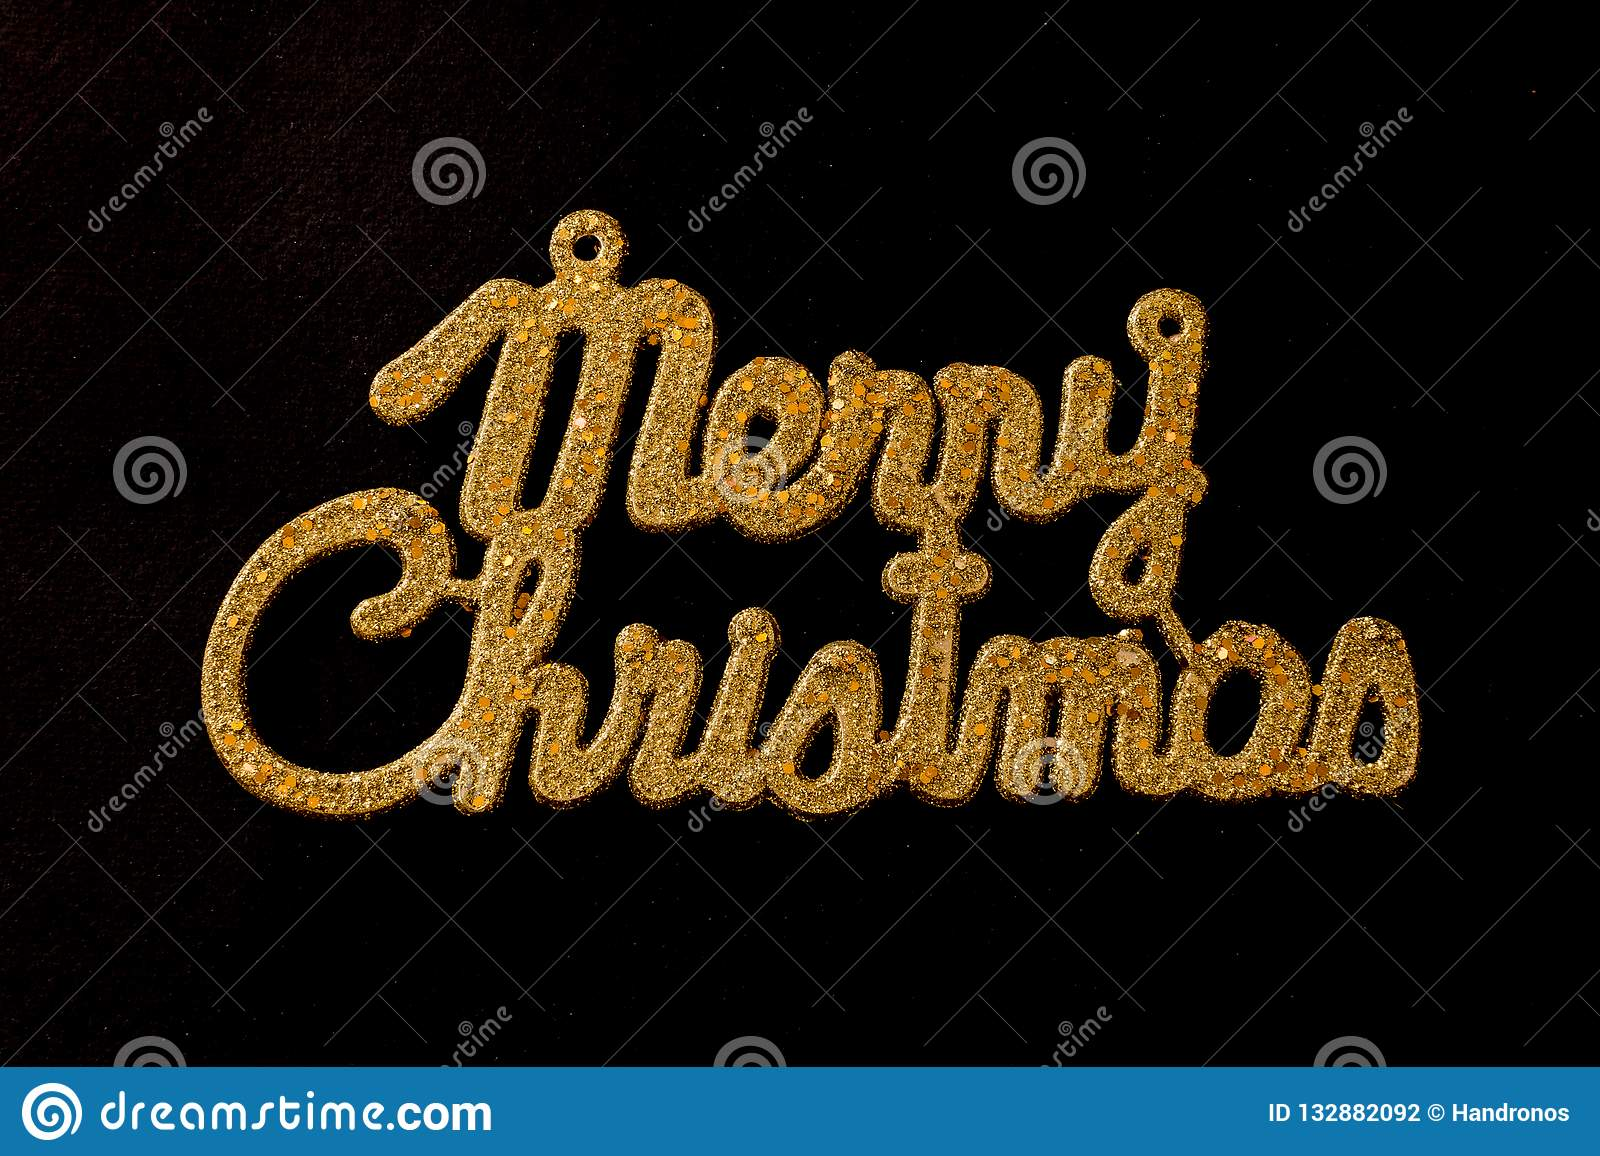 Merry Christmas golden text on a black background